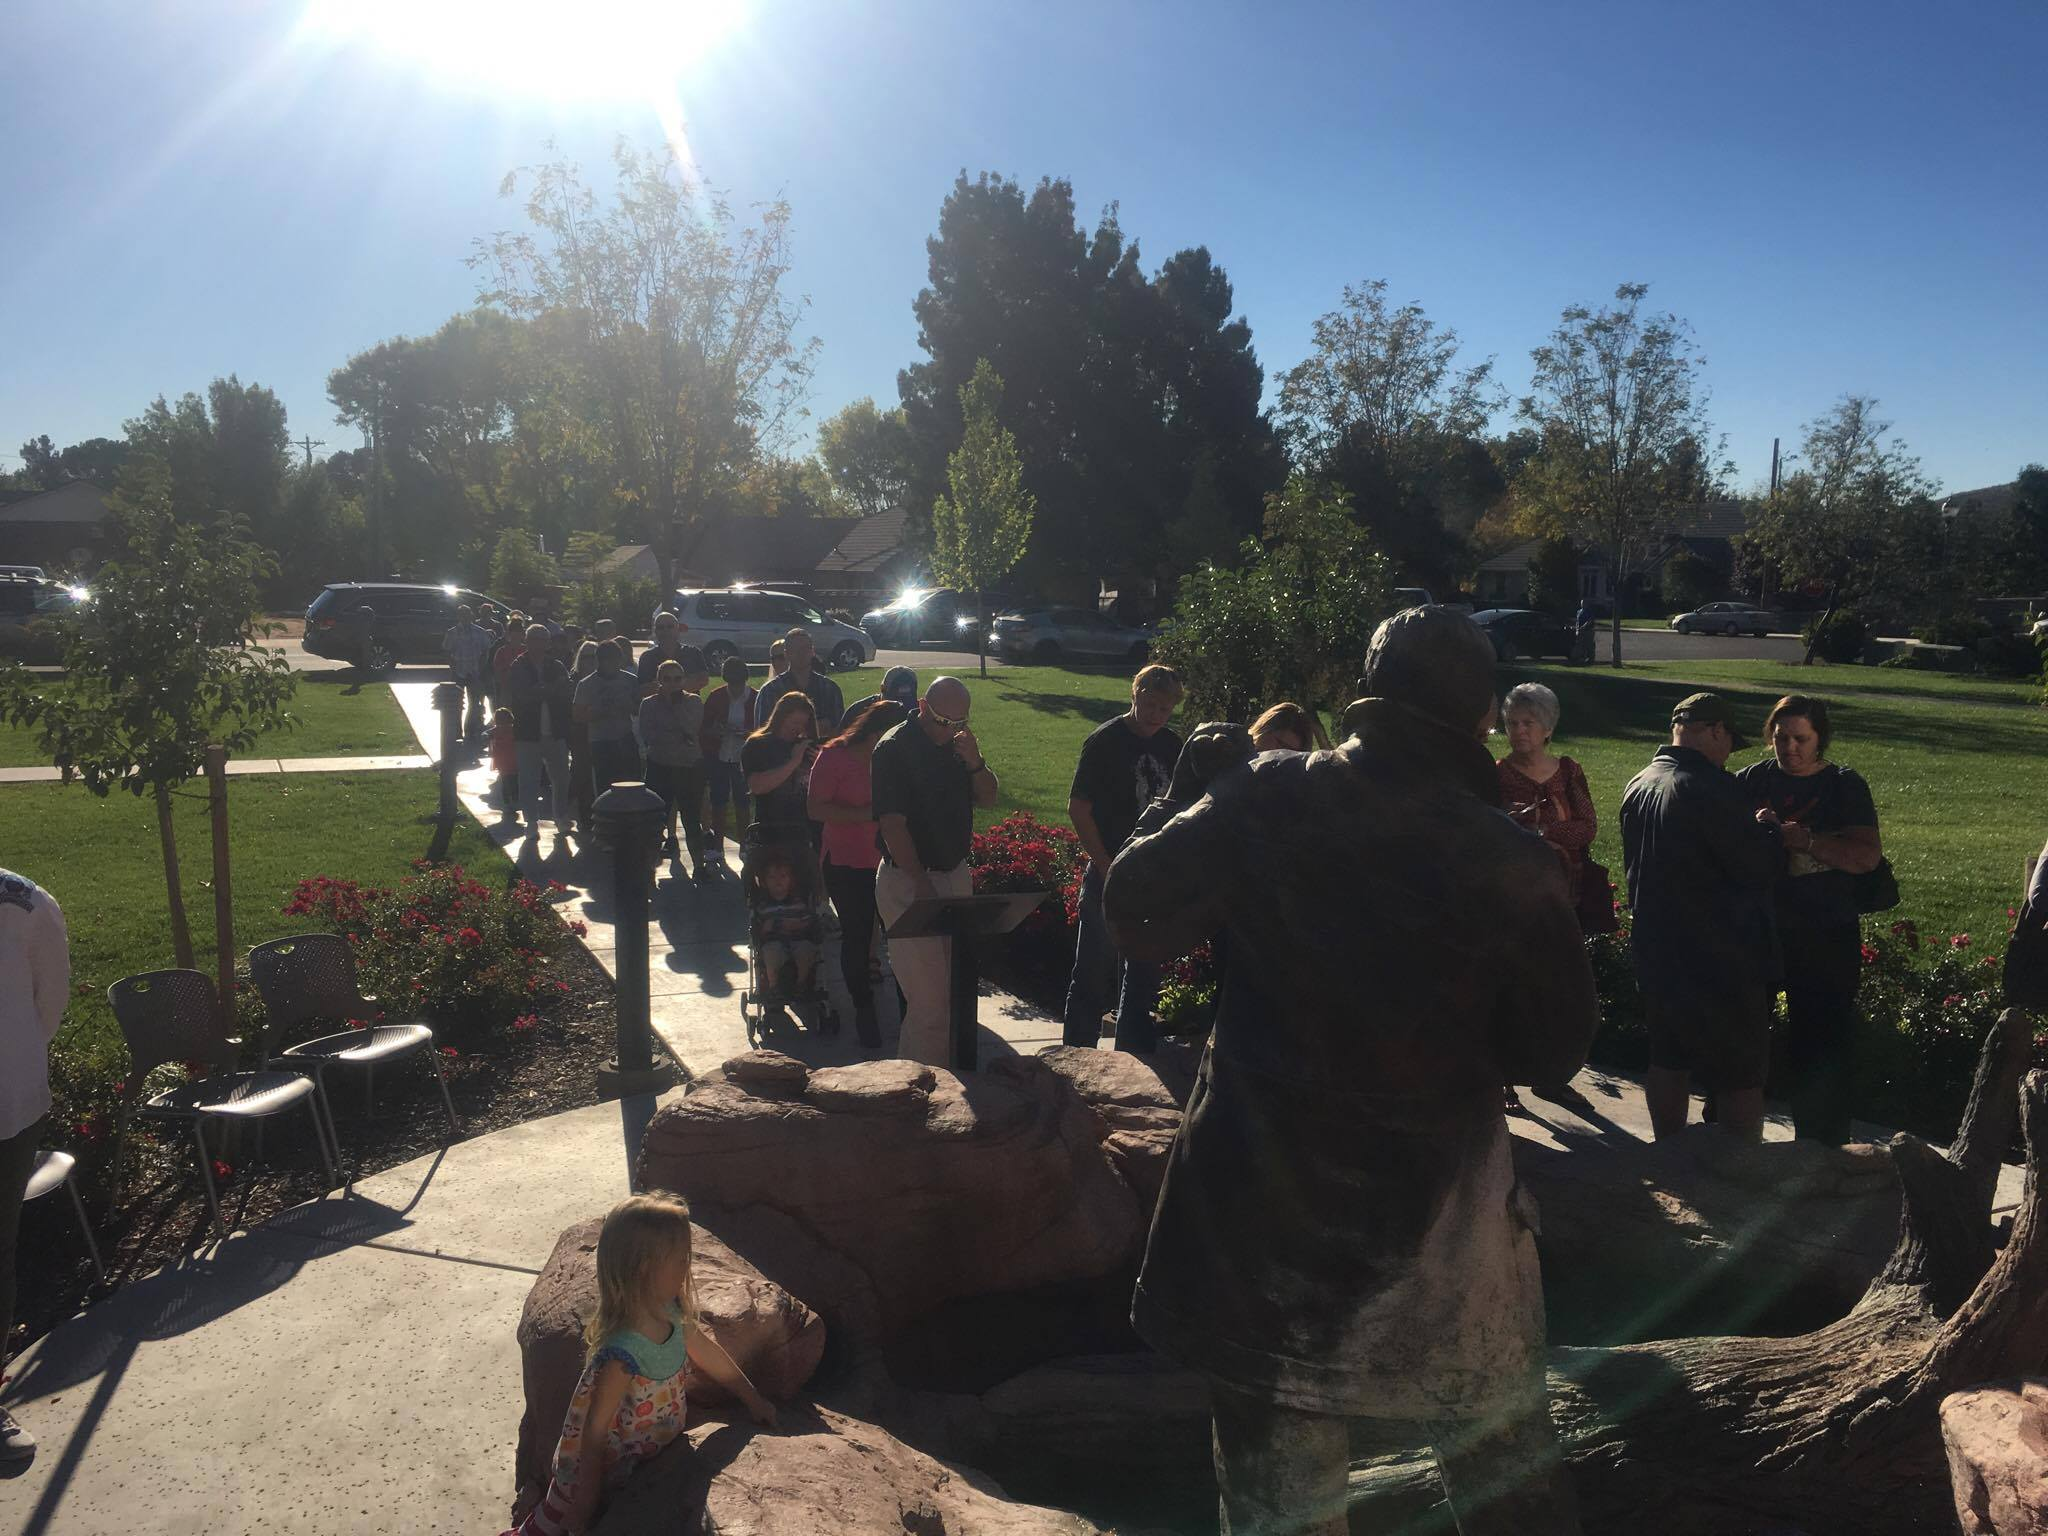 The line to vote in Santa Clara, is growing. This photo taken at about 9:20 a.m. at 2603 Santa Clara Drive. Electronic voting machines remain out of order and paper ballots are being utilized. Santa Clara, Utah, Nov. 8, 2016 | Photo by Hollie Reina, St. George News